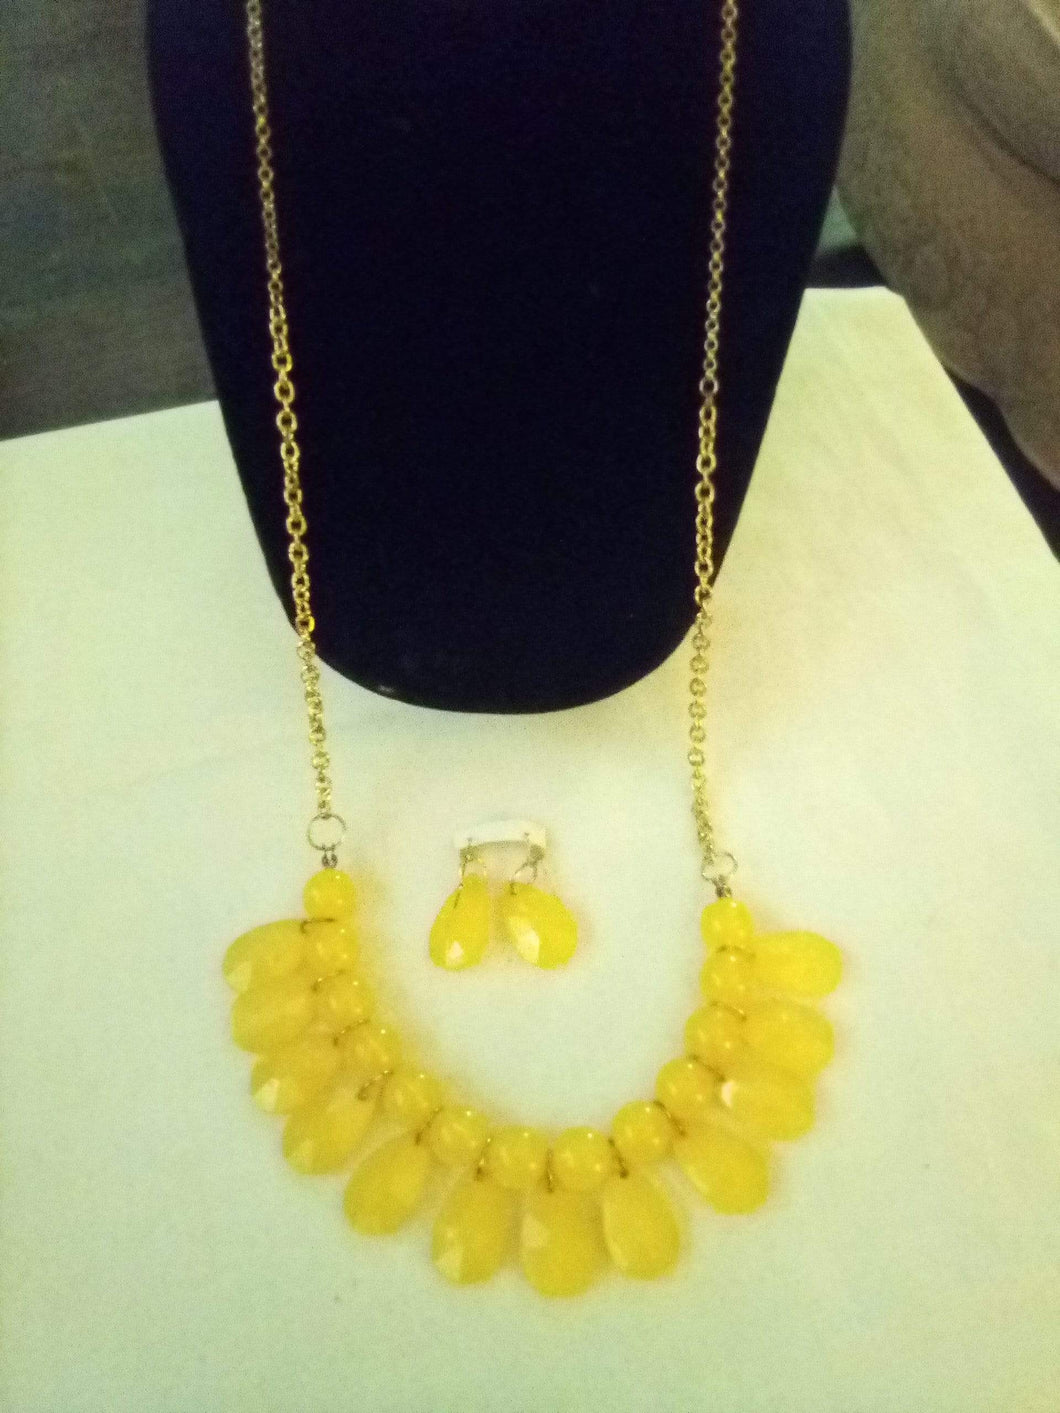 Pretty necklace with yellow design and matching pierced earringsrings - B&P'sringsnthings